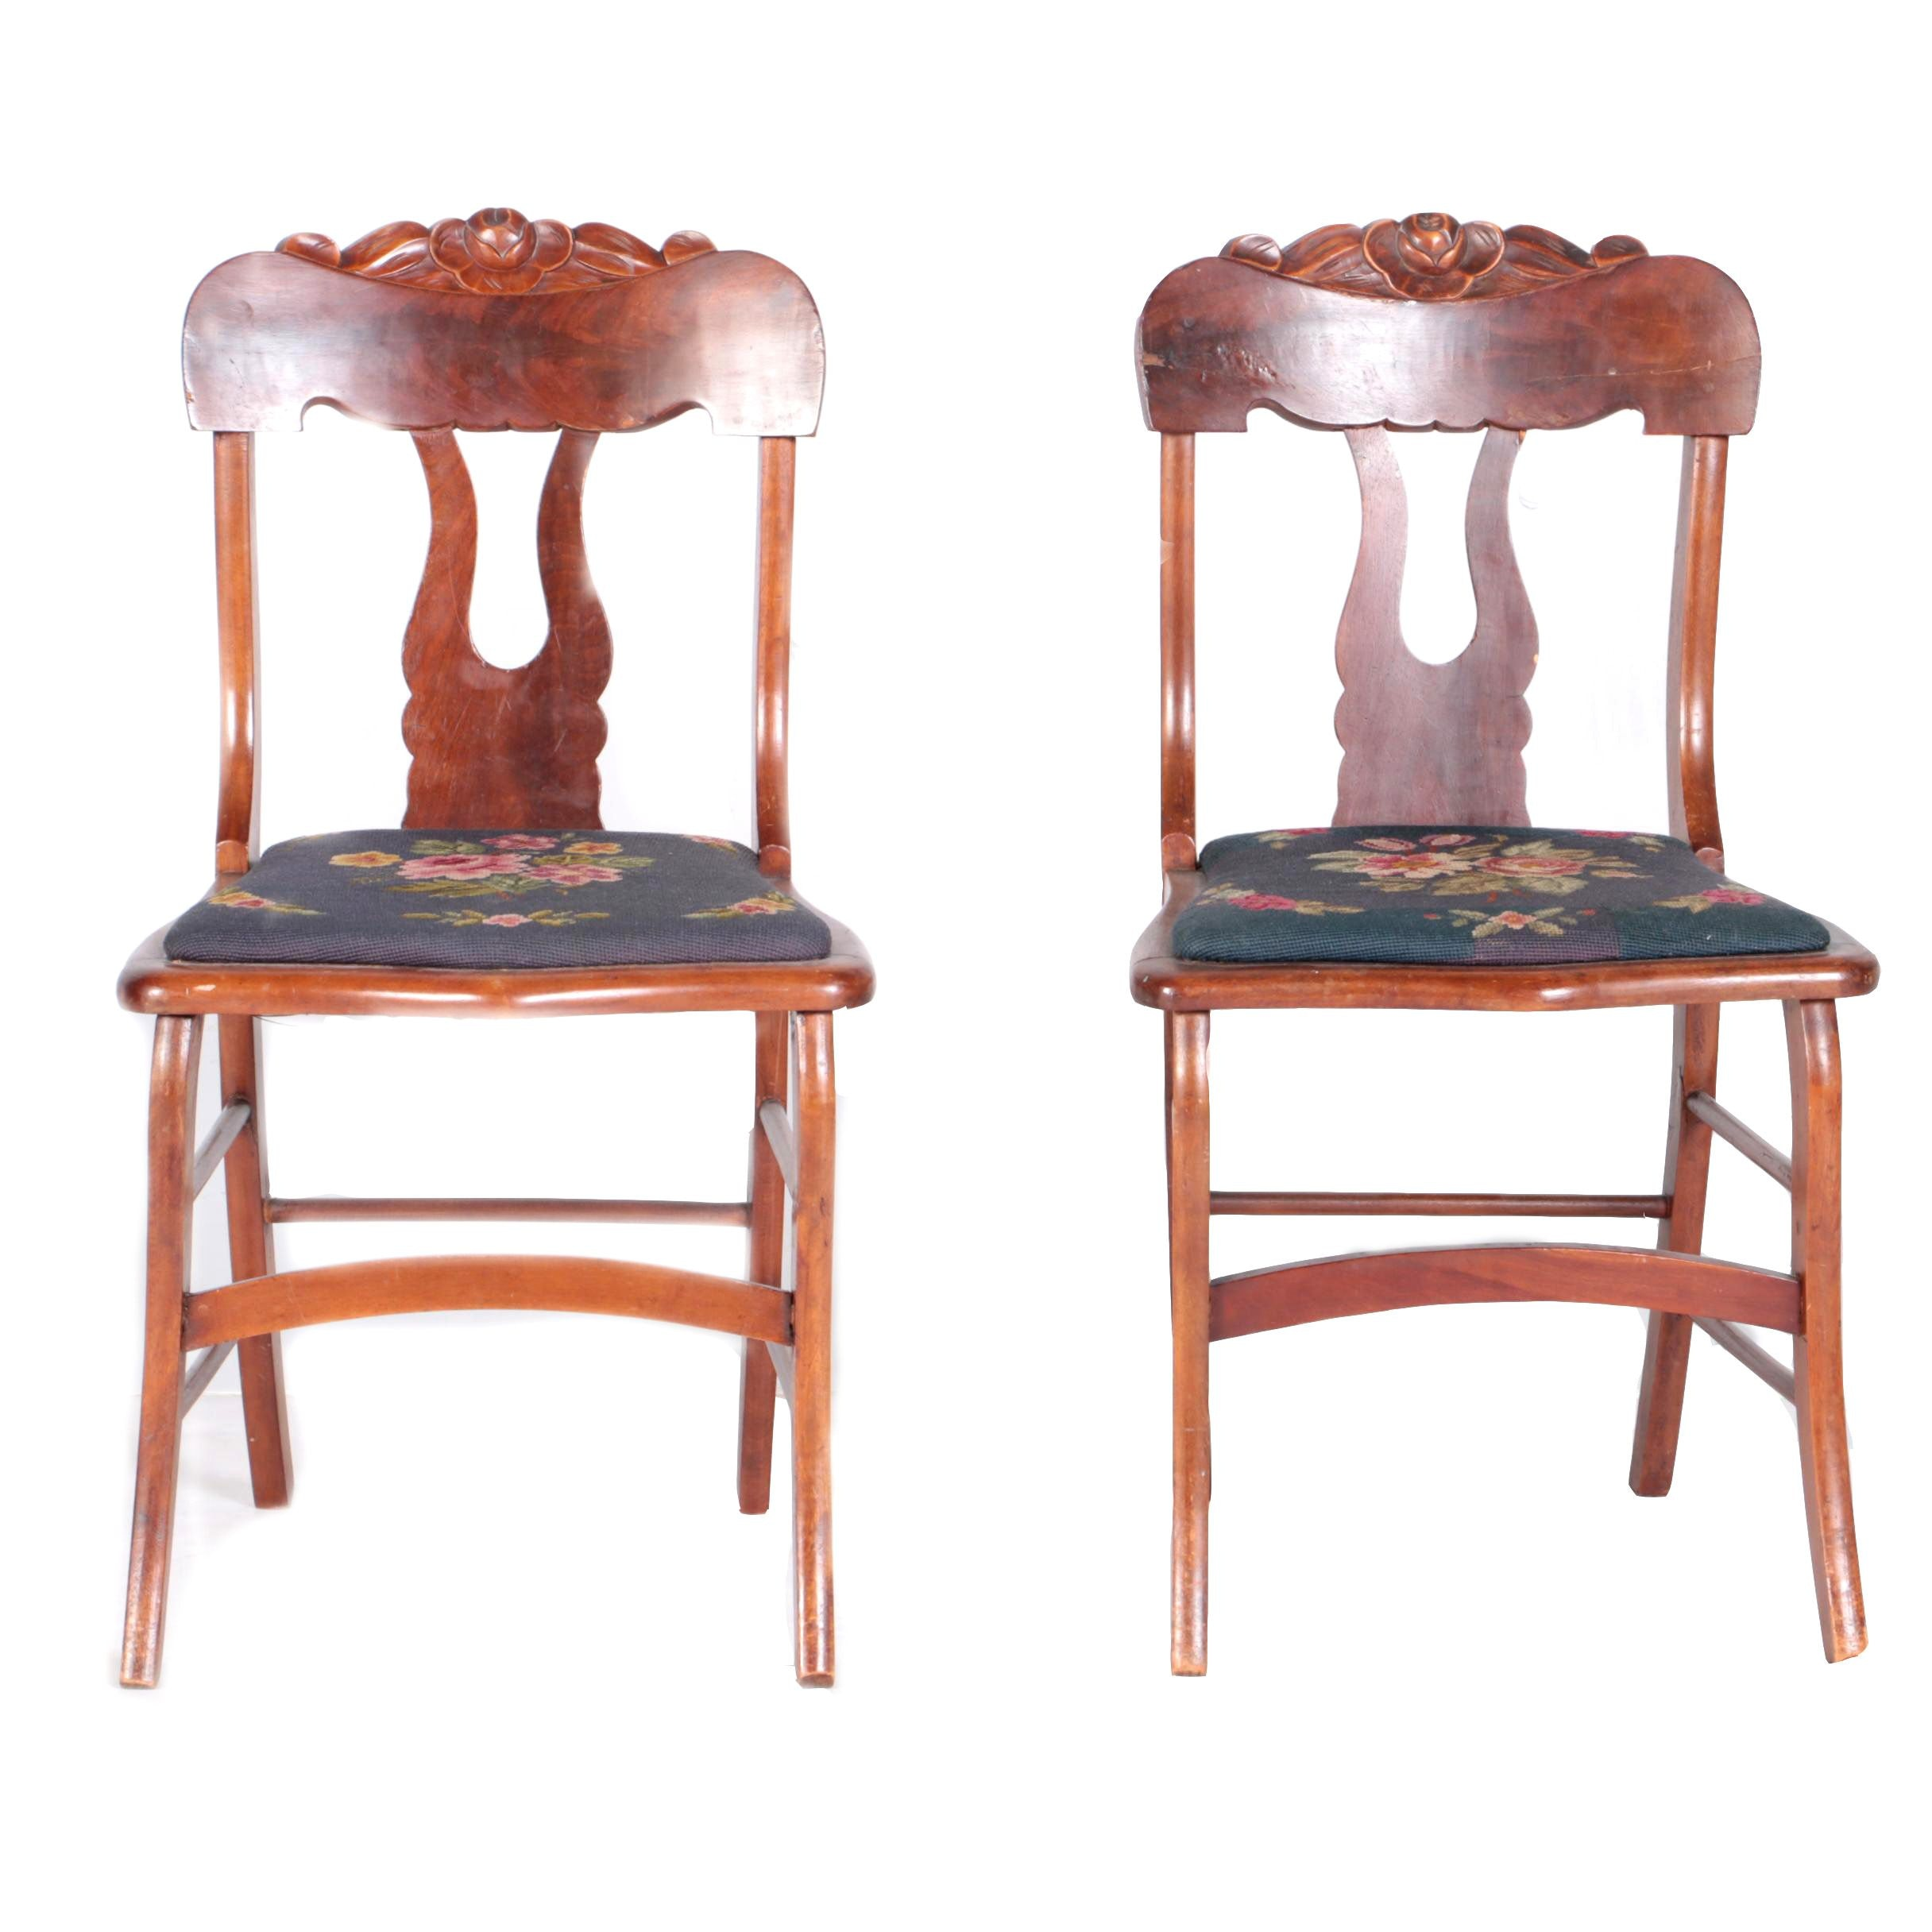 Antique Victorian Mahogany Side Chairs with Needlepoint Seat